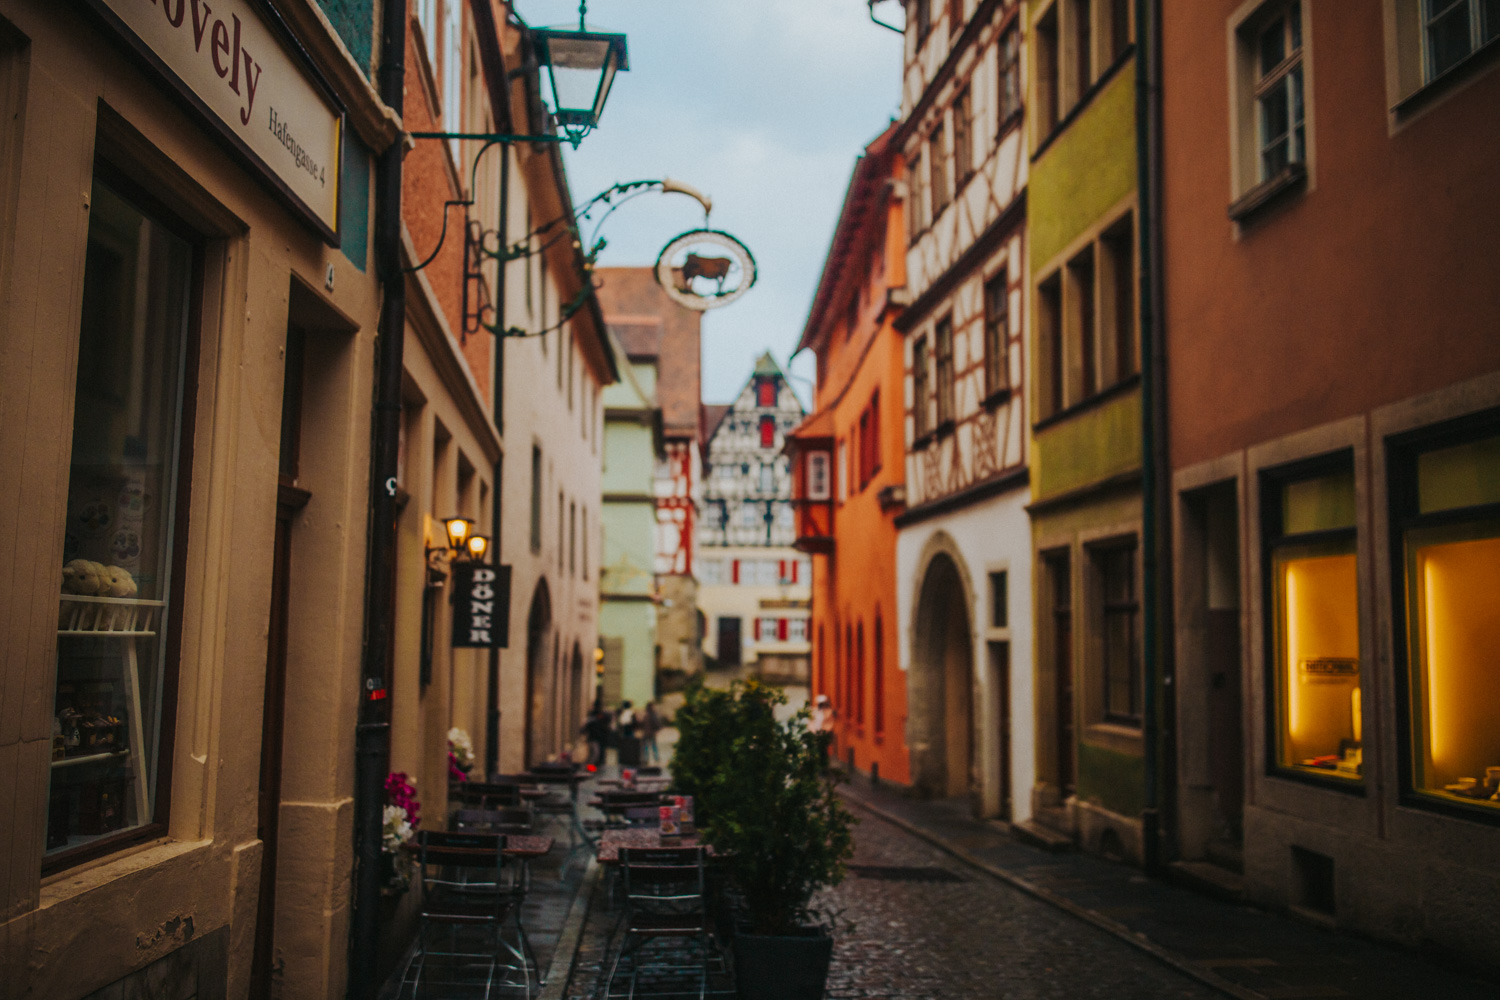 germany, europe, rothenburg, brydengivingphotographer, travel, culture, adventure, national geographic, documentary, photography, canon